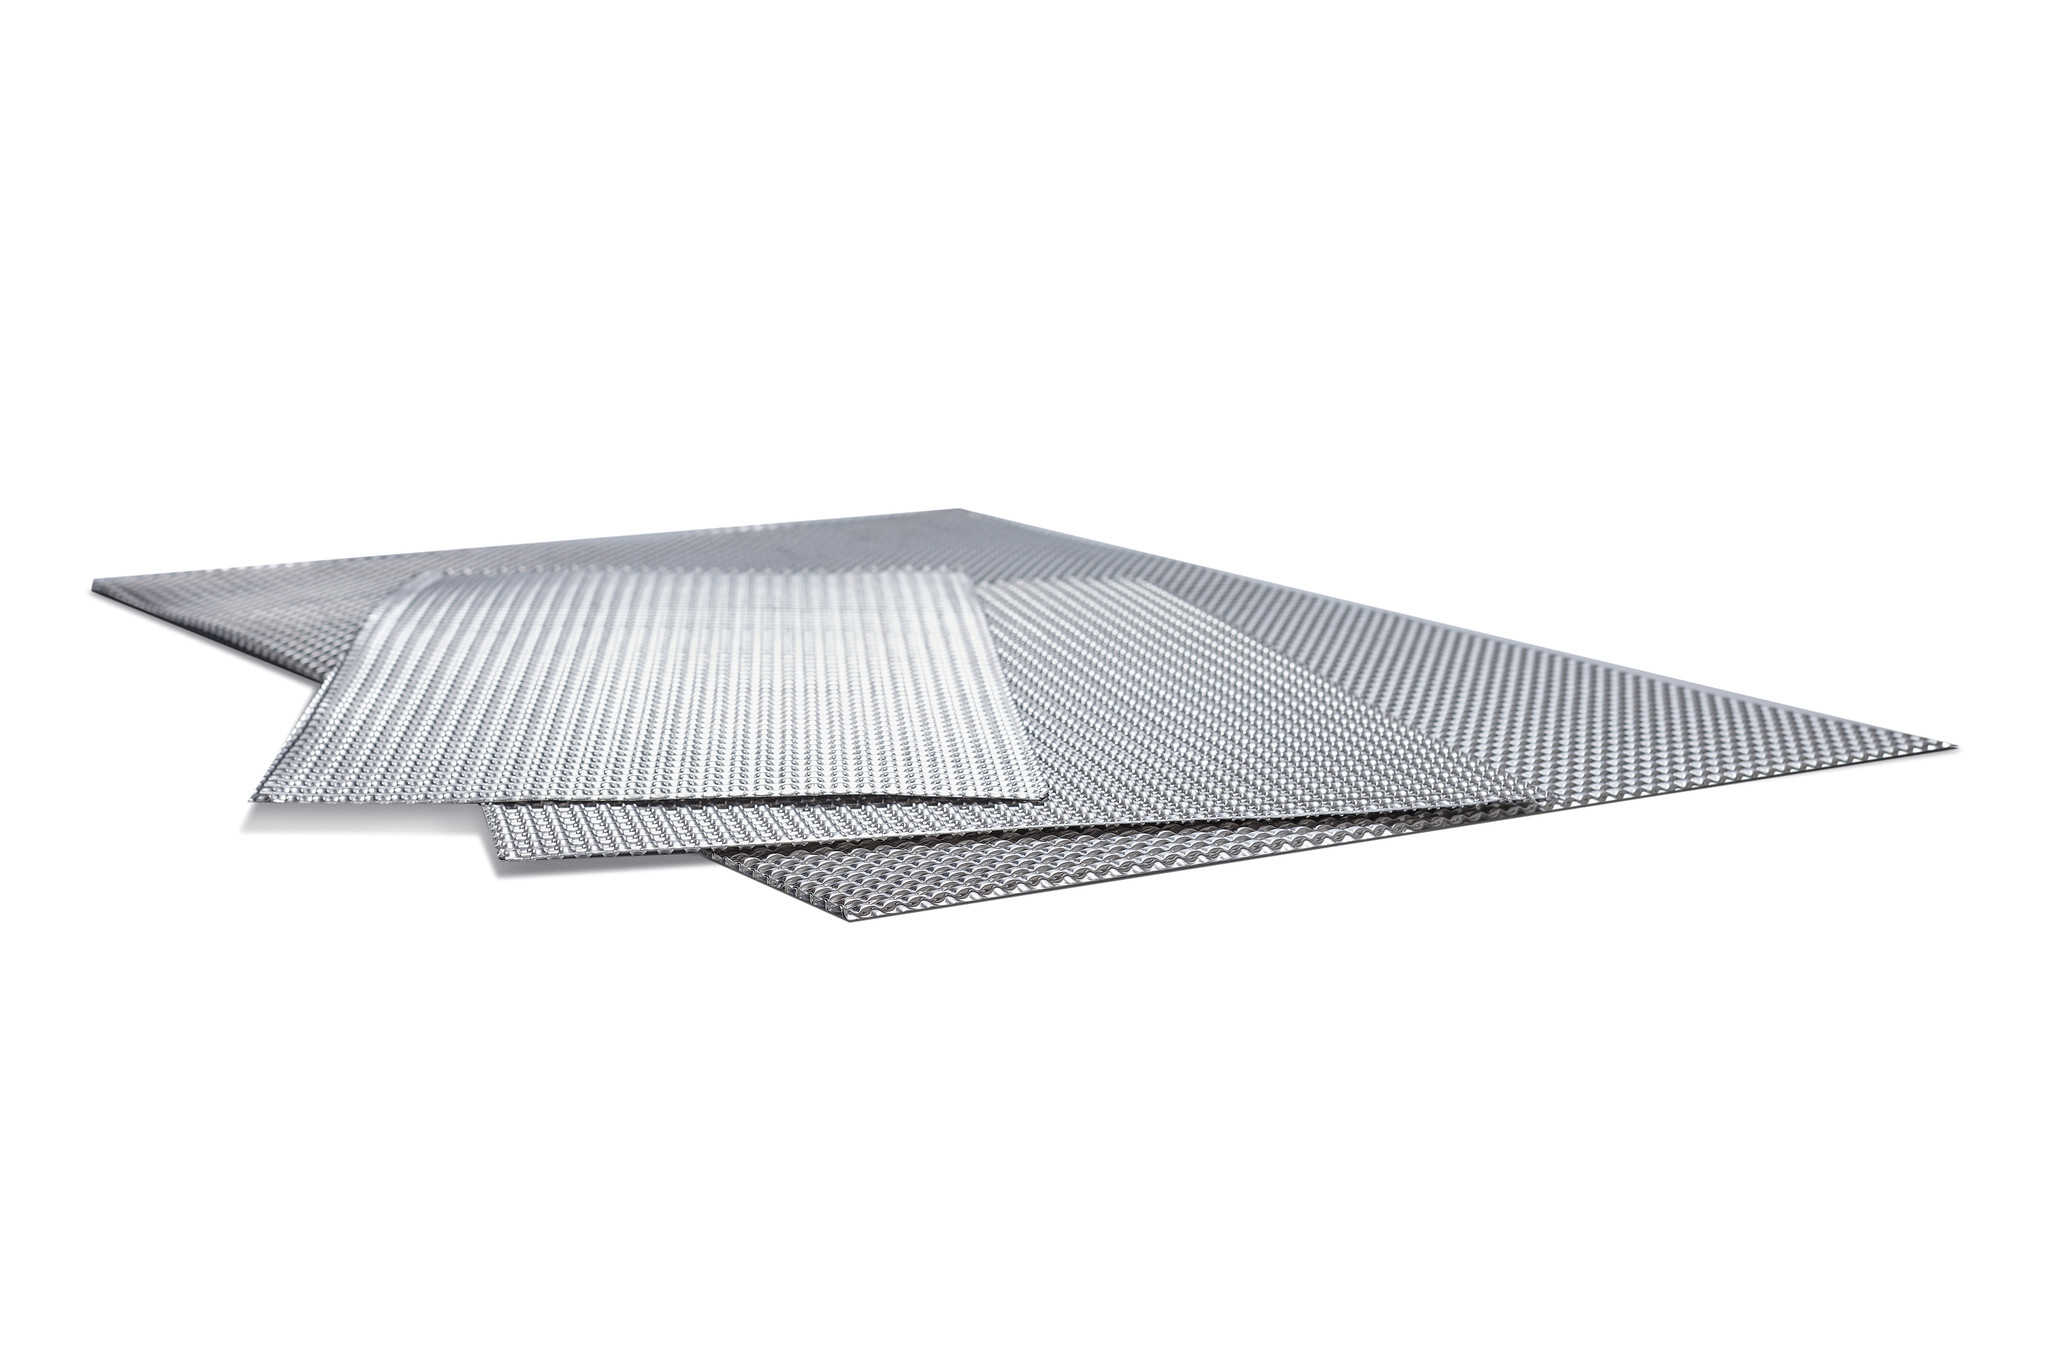 Heat Shieldings Heat-resistant and sound-absorbing aluminum plate 615 x 600